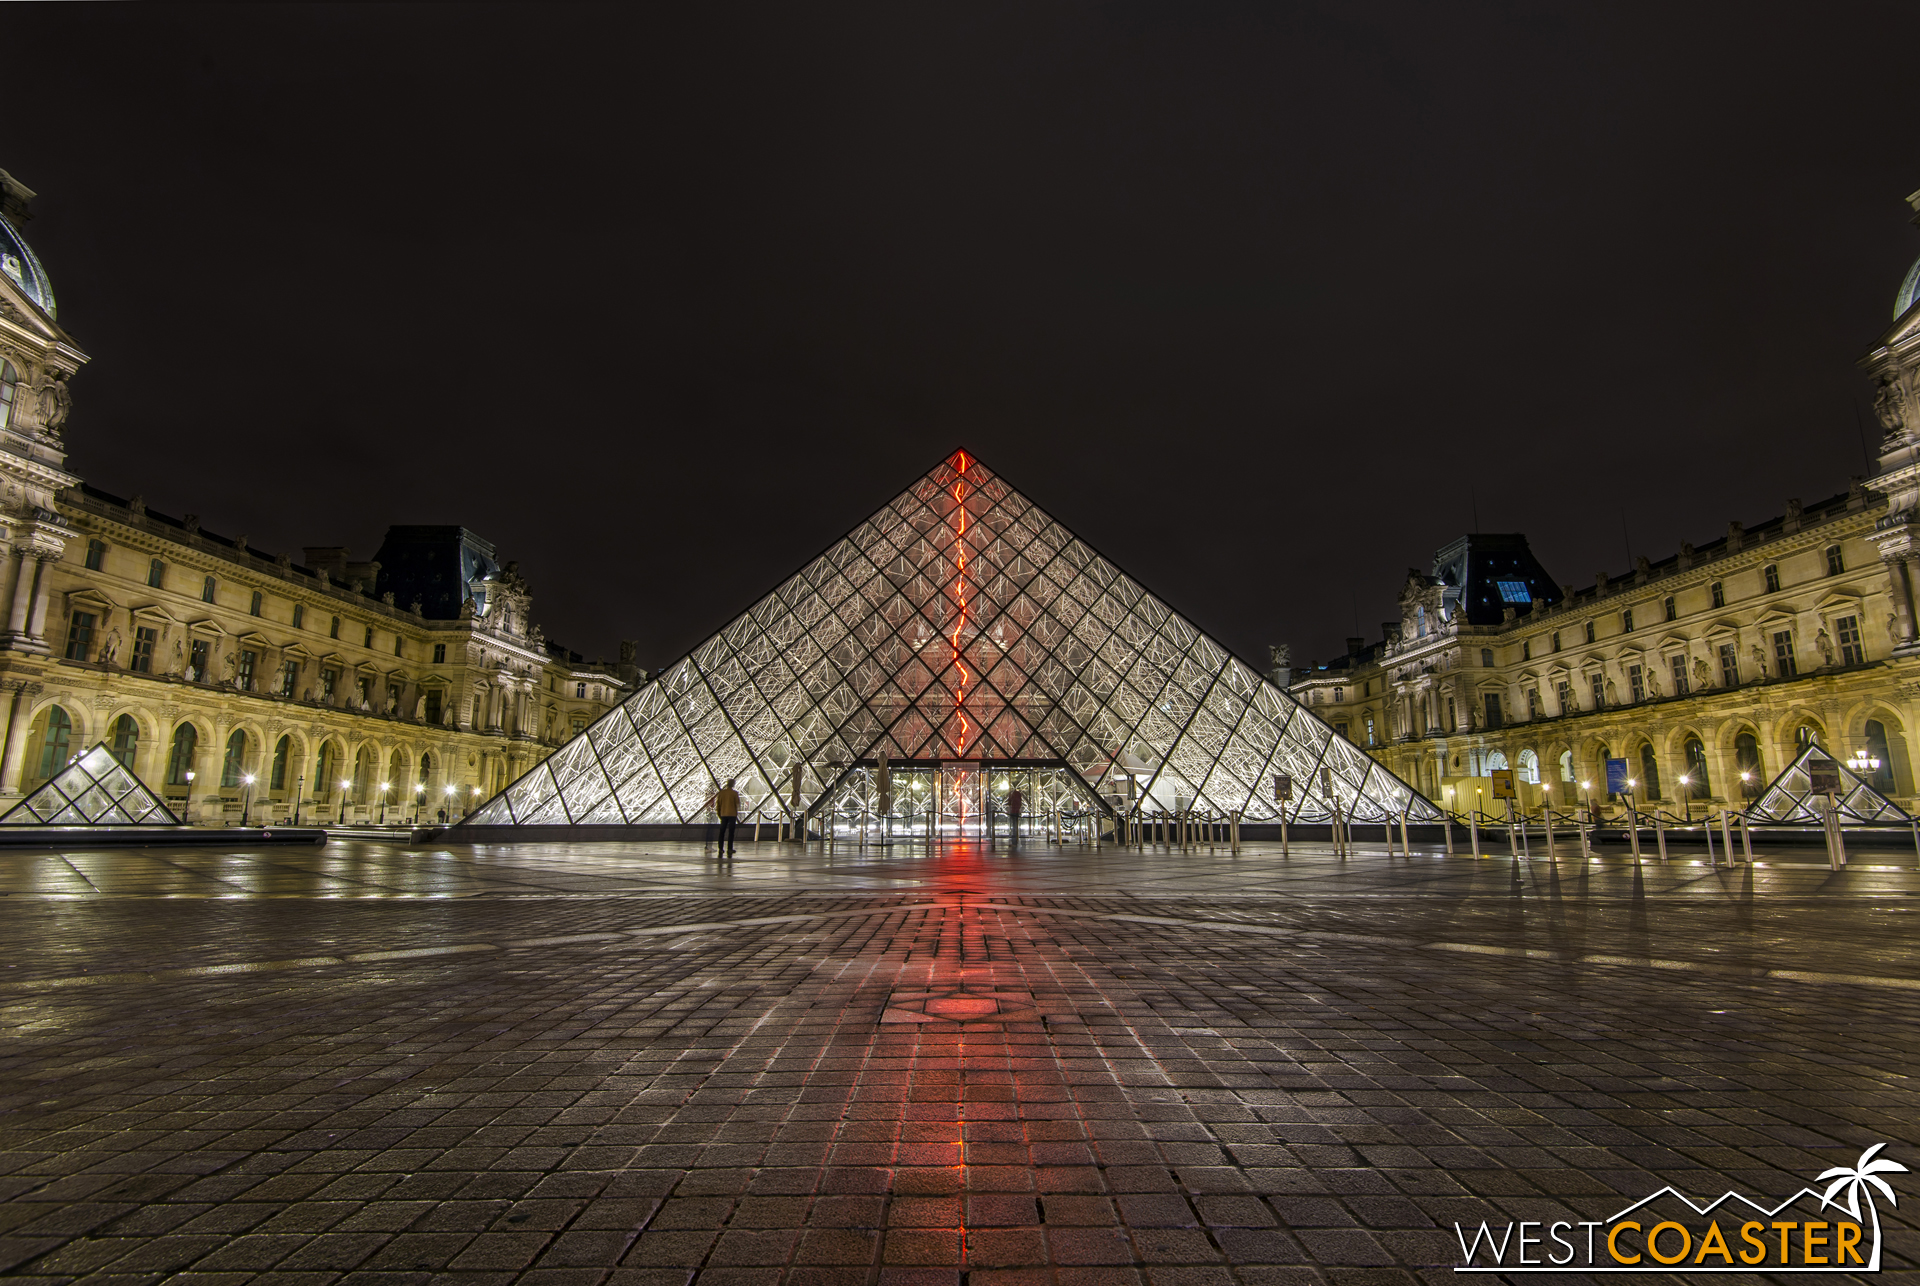 The I.M. Pei-designed glass pyramid of the Louvre, illuminated late at night.